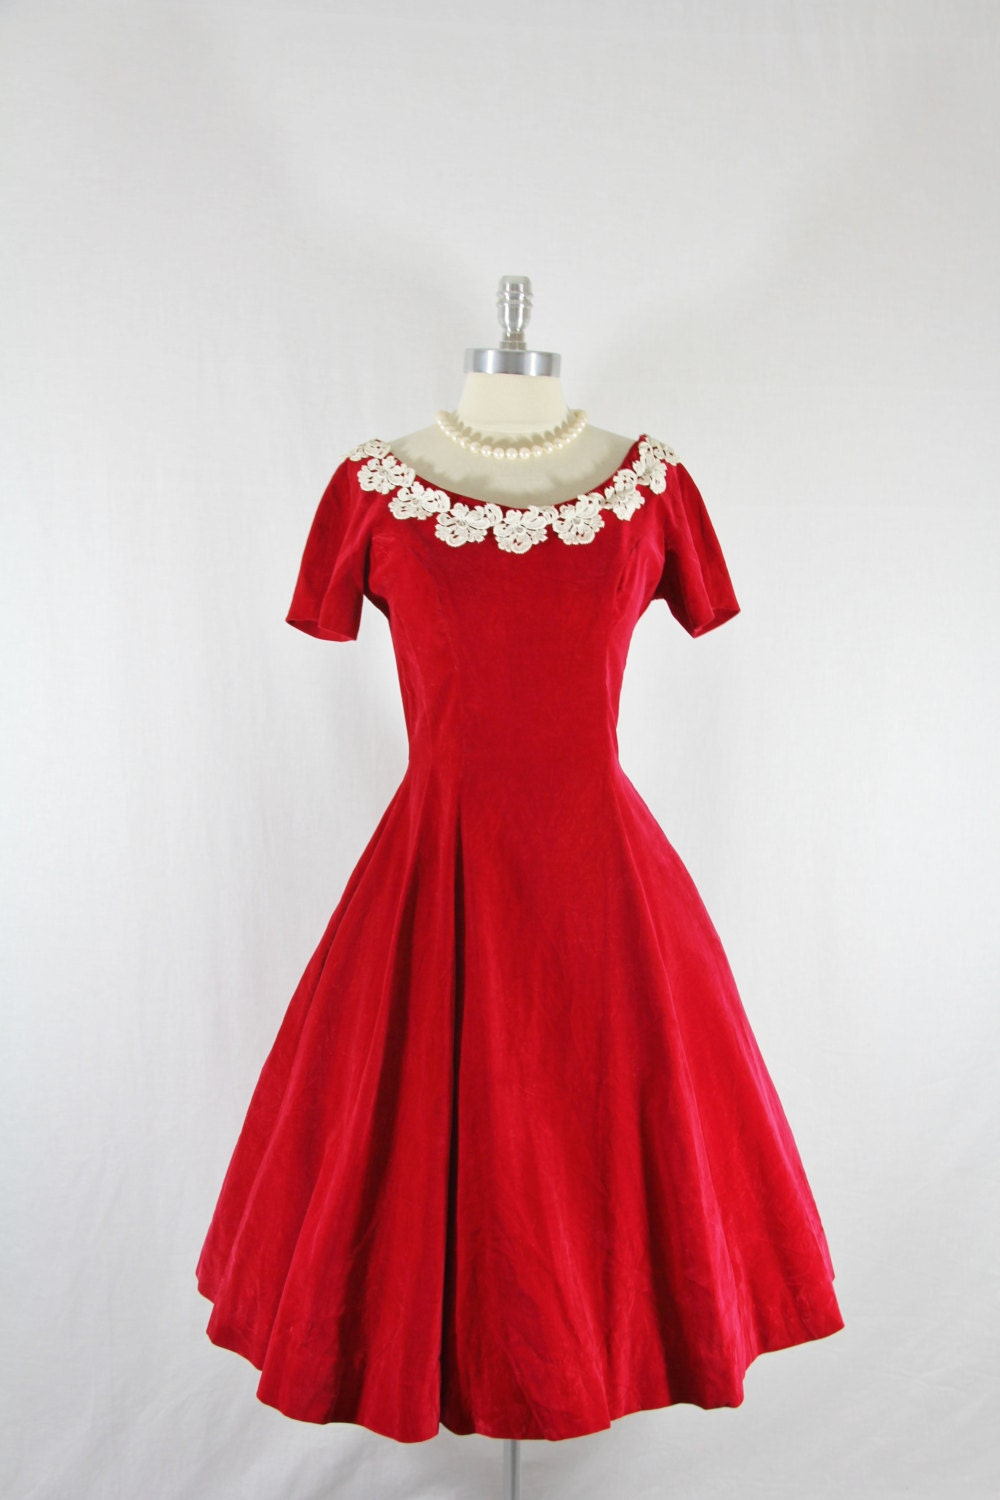 1950 S Vintage Dress Red Velvet Short Sleeve Full Skirt